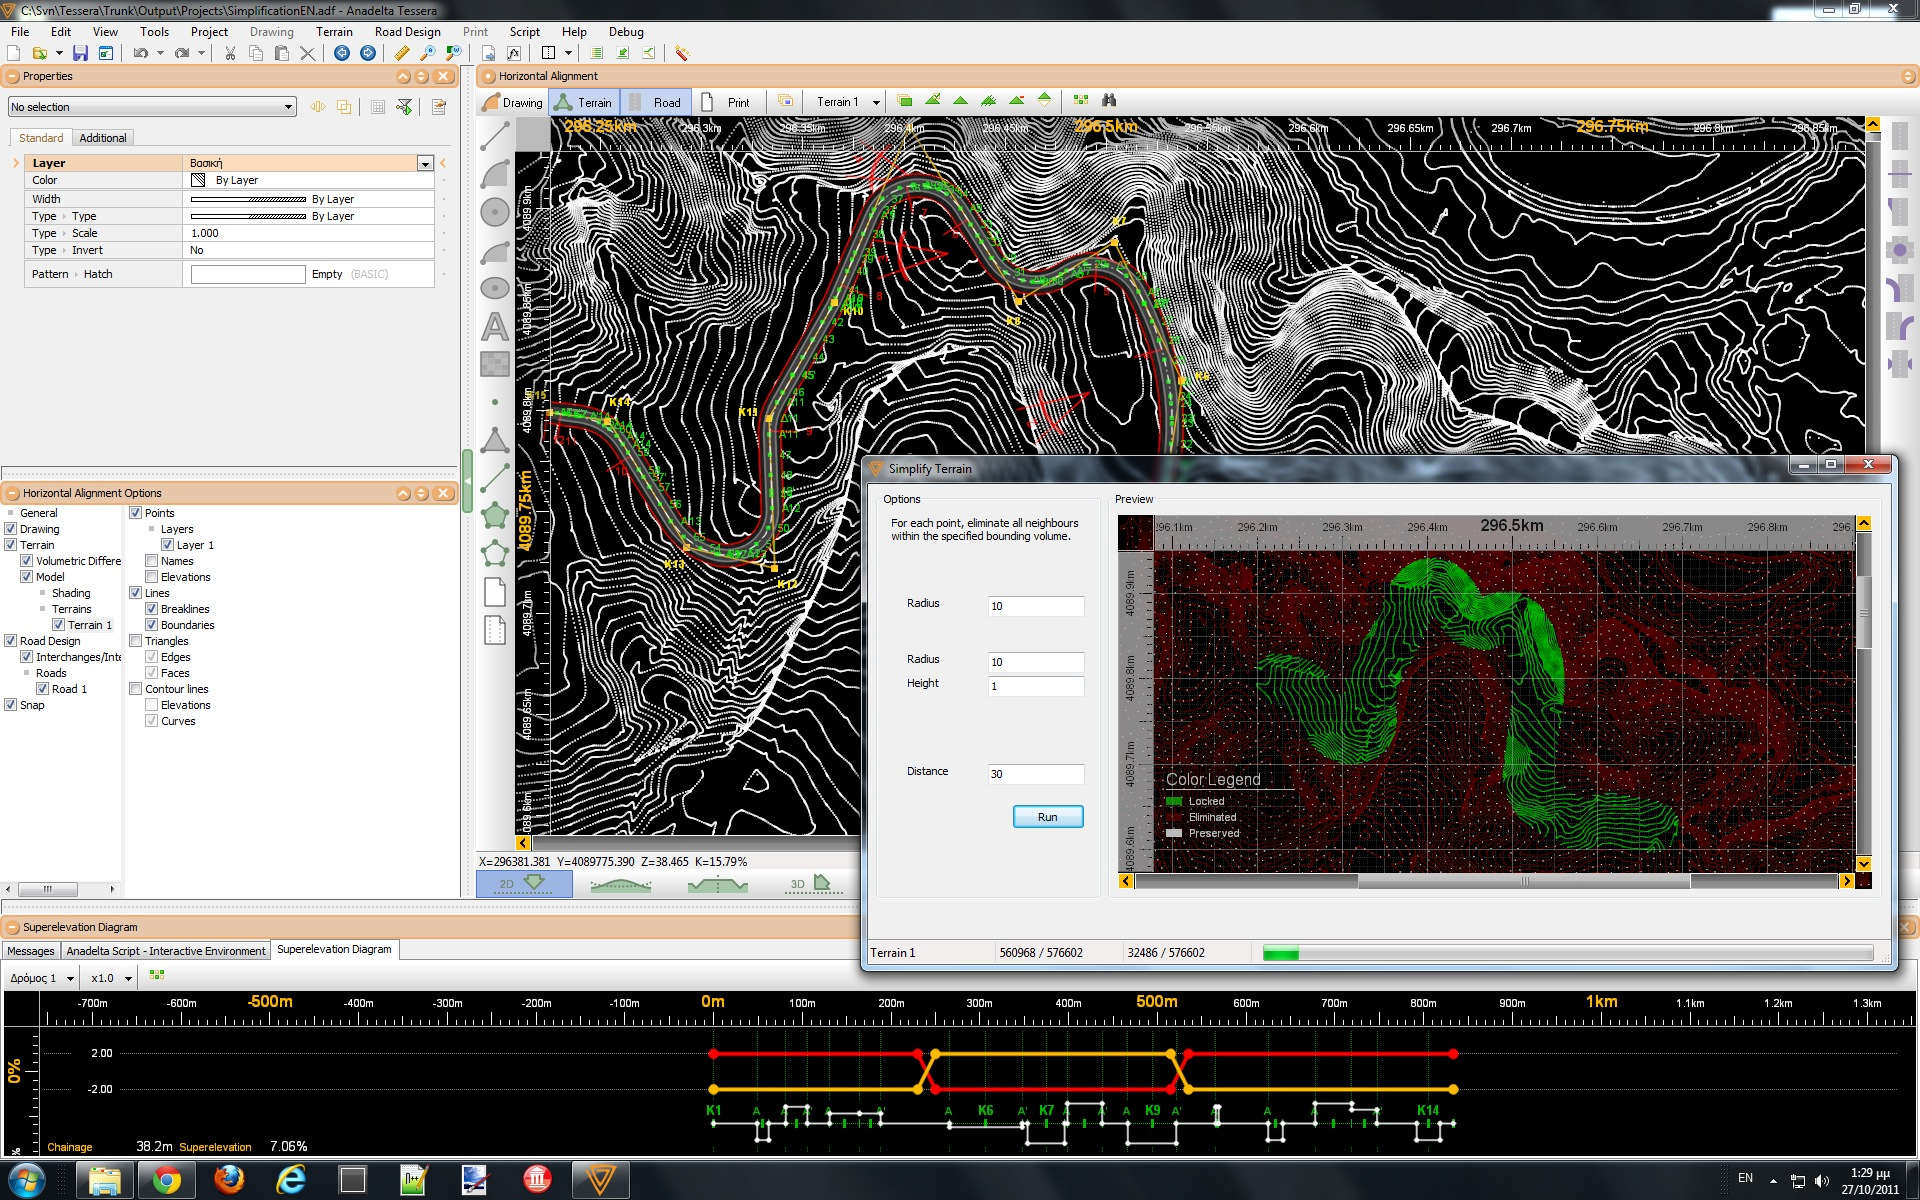 autocad 2007 software download with key entirelypattoncf